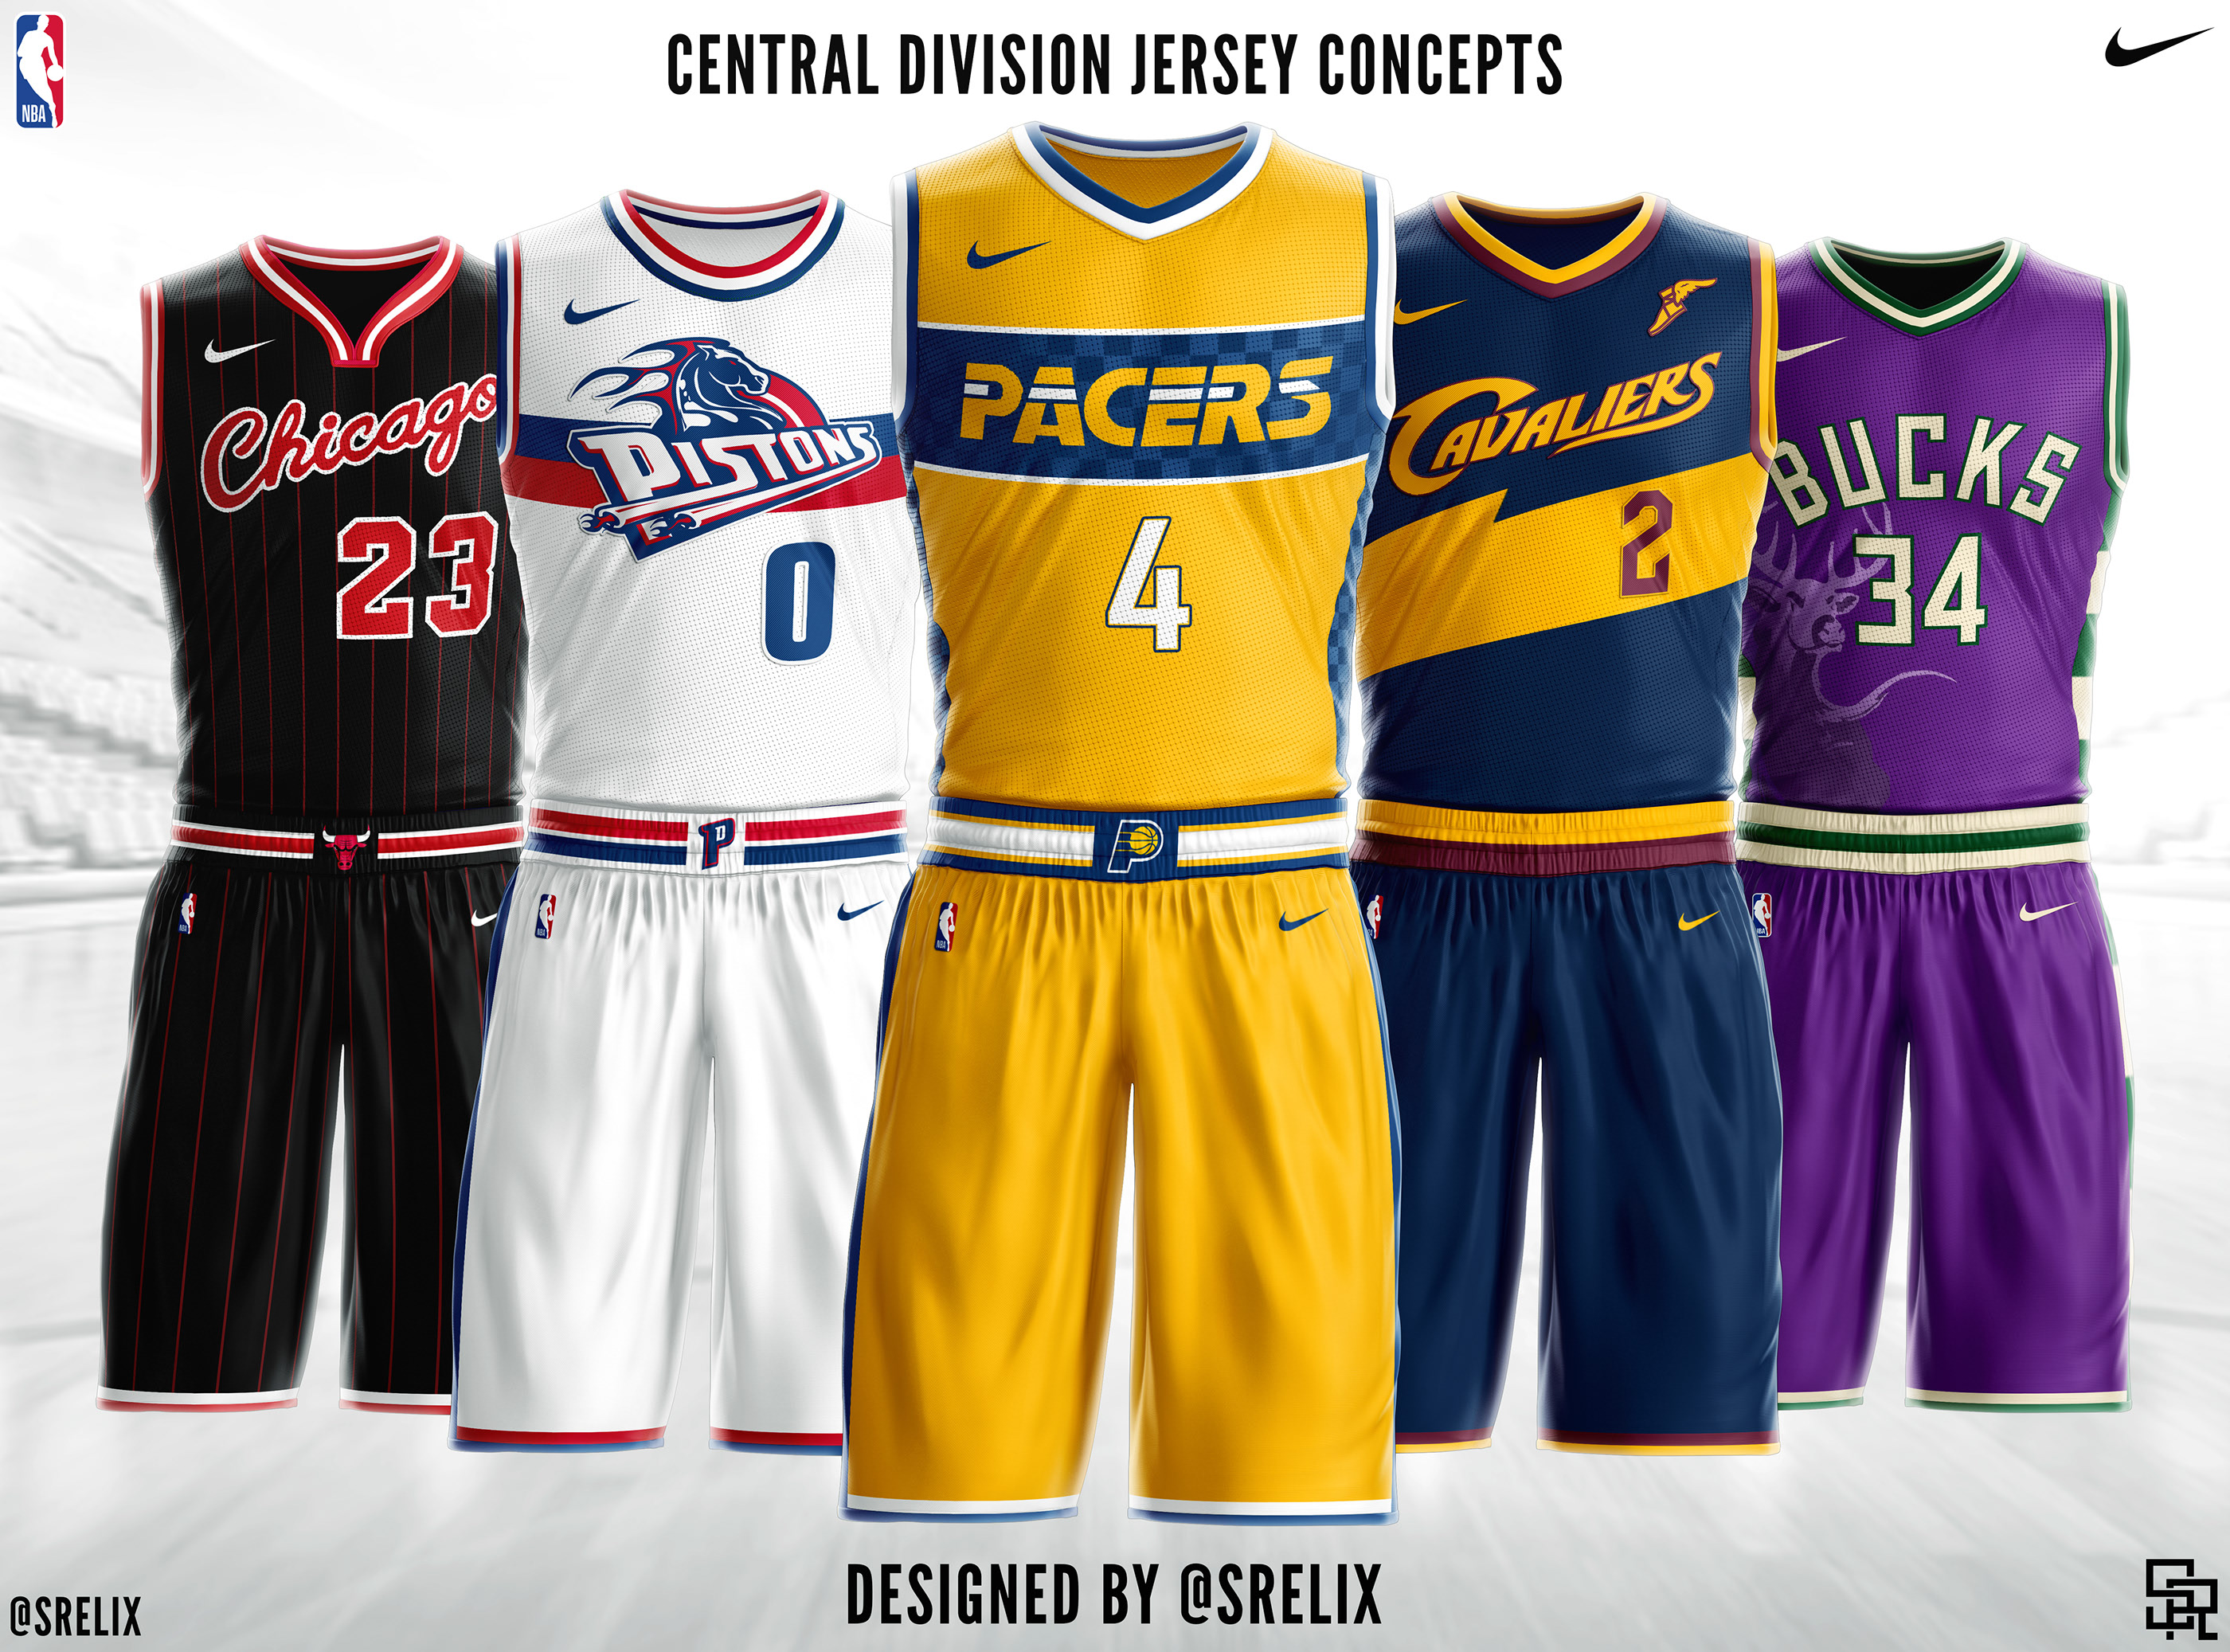 reputable site 83801 ea19e NBA Jersey Concepts on Behance